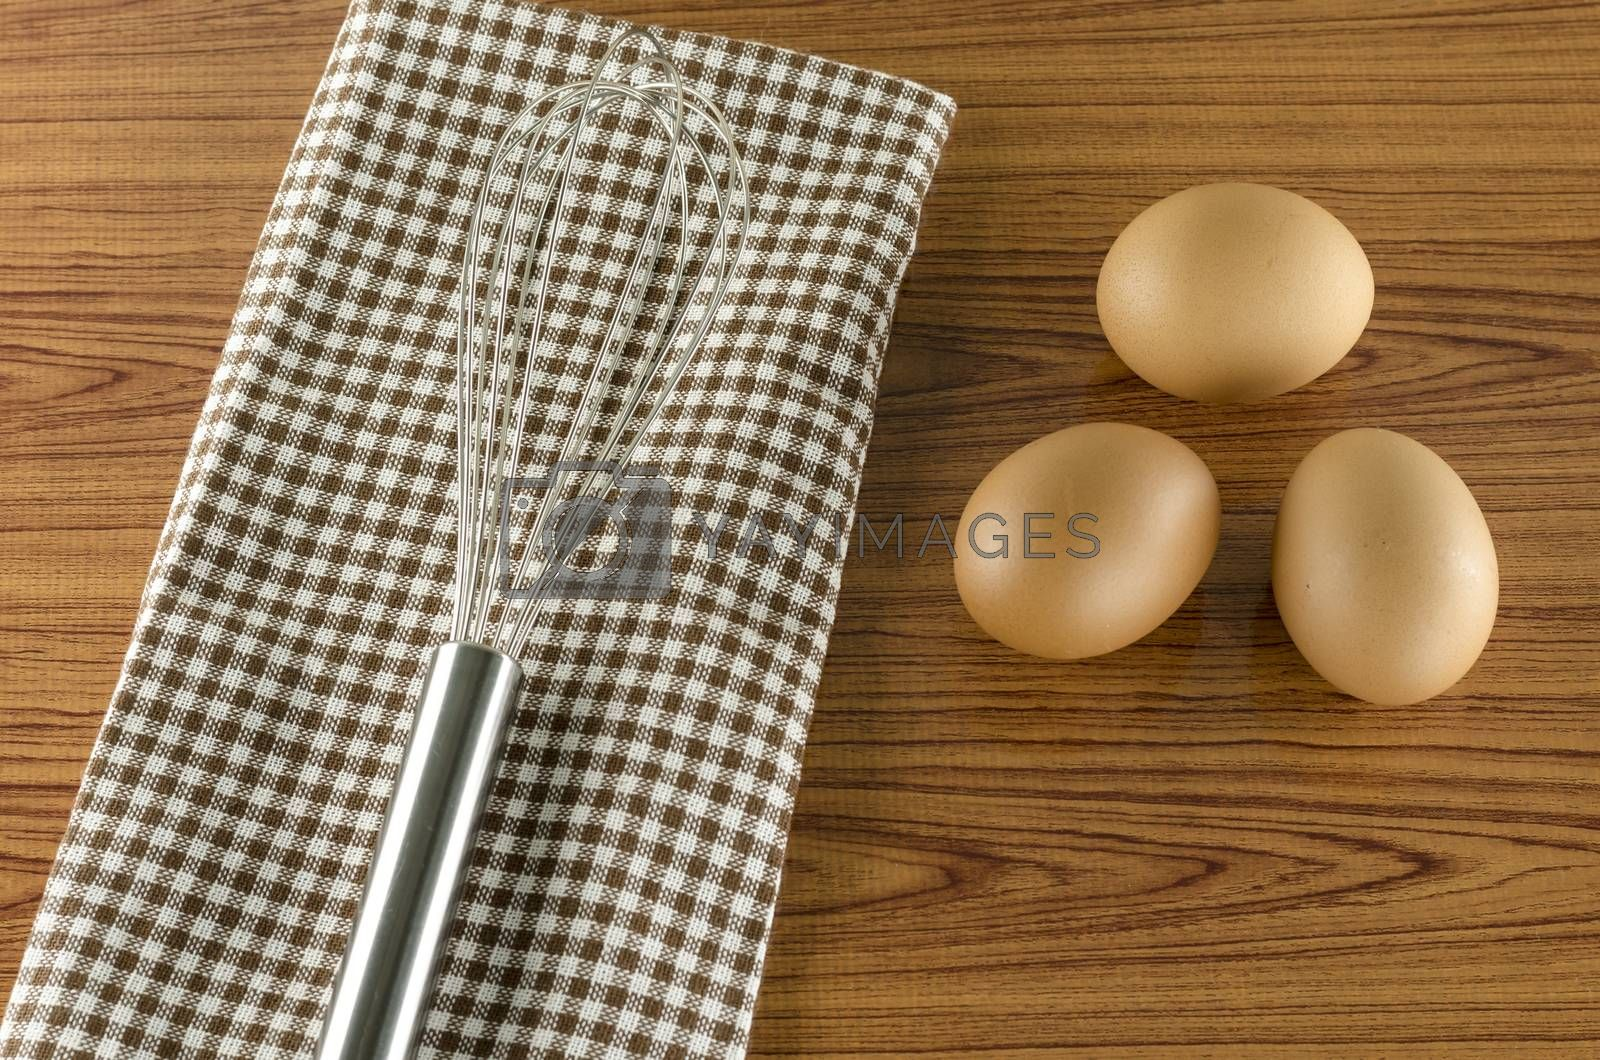 Royalty free image of whisk egg and brown kitchen towel by ammza12